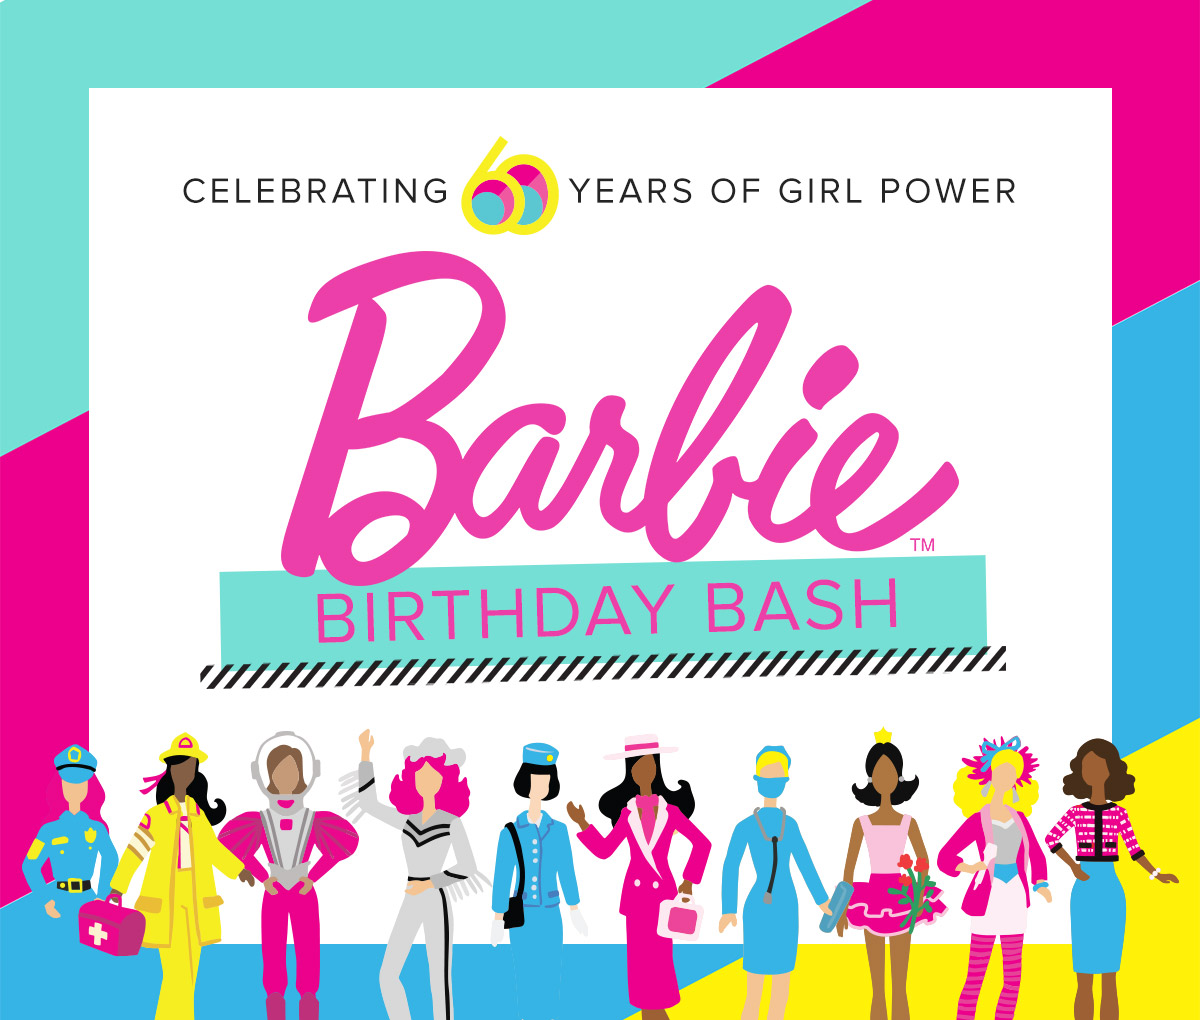 Celebrating 60 Years Of Girl Power : Barbie's Birthday Bash